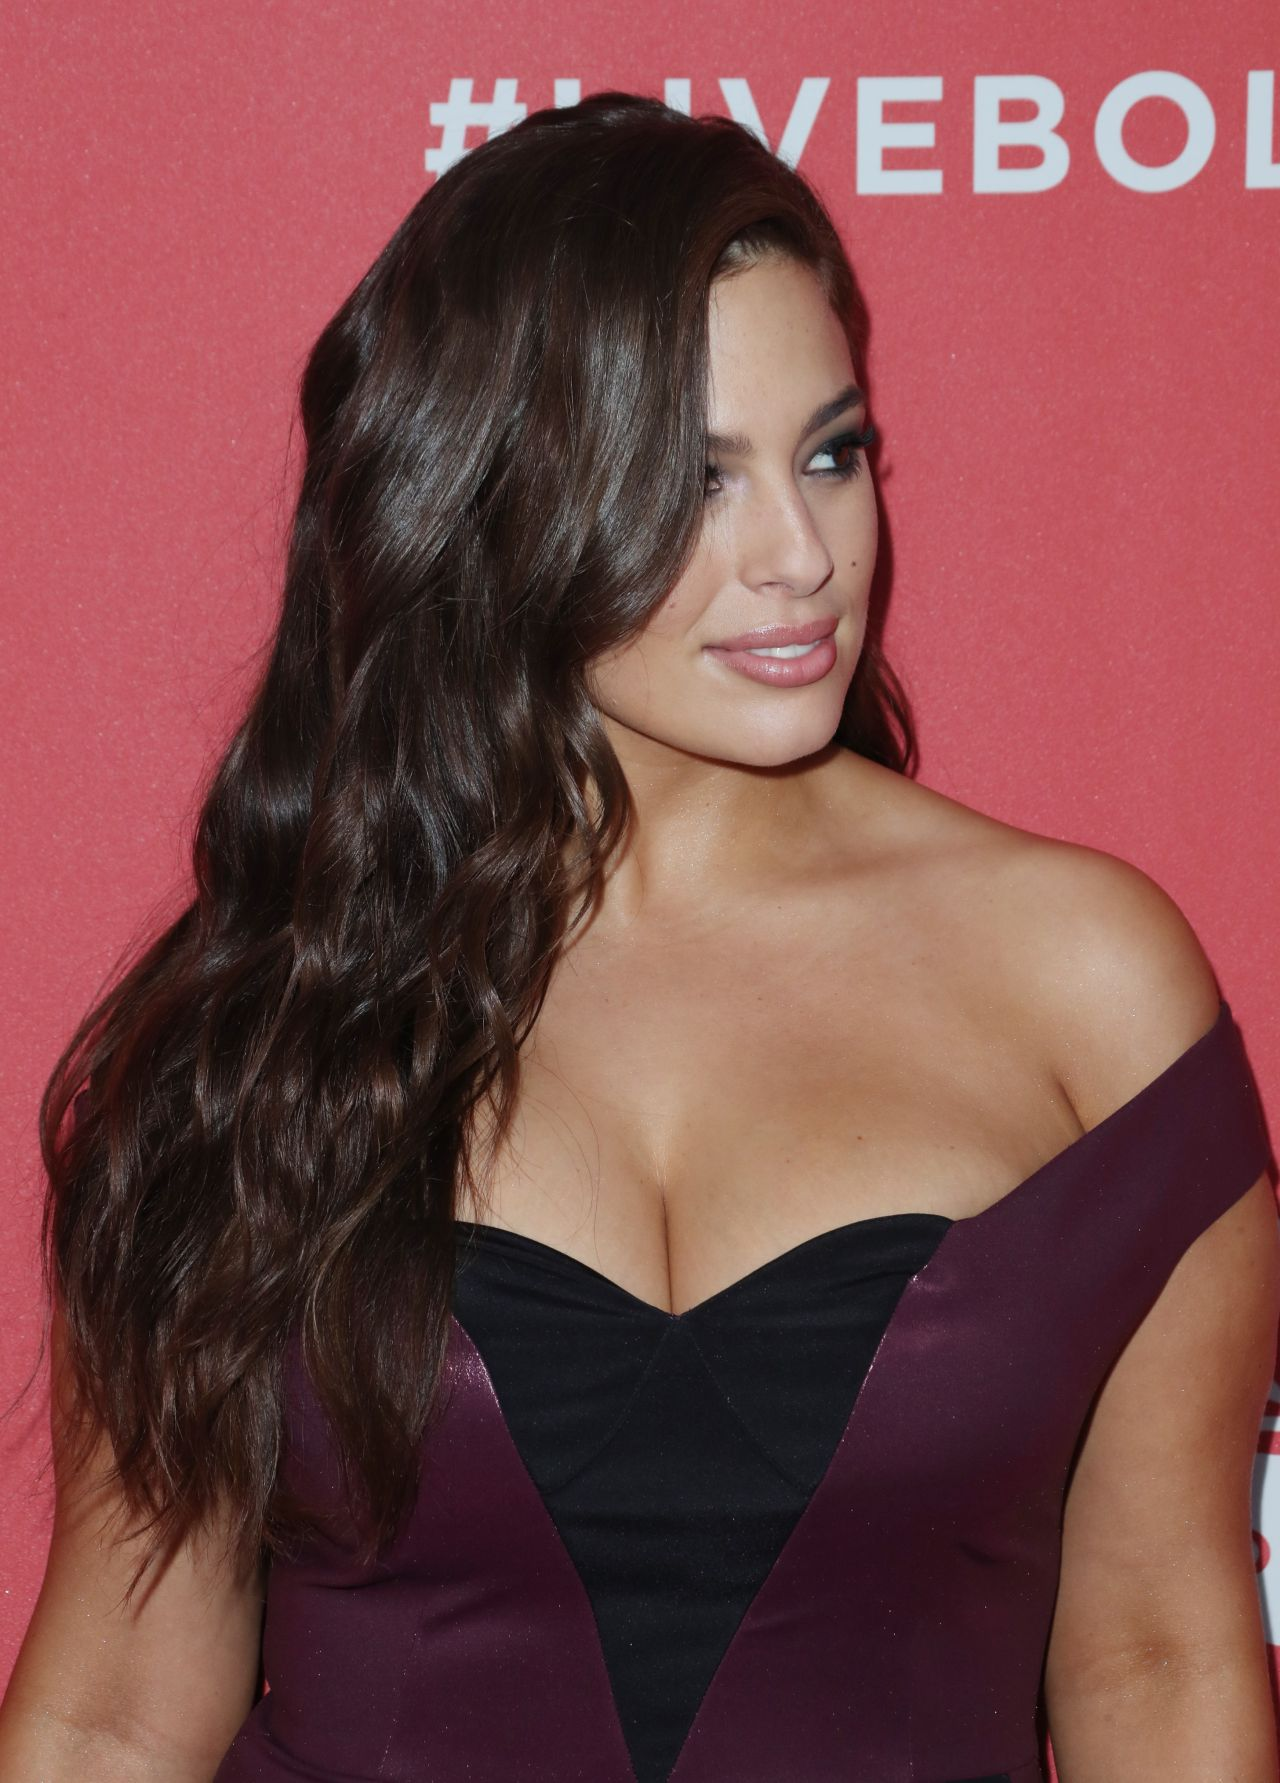 Ashley Graham Revlon S Quot Live Boldly Quot Campaign Launch In Nyc